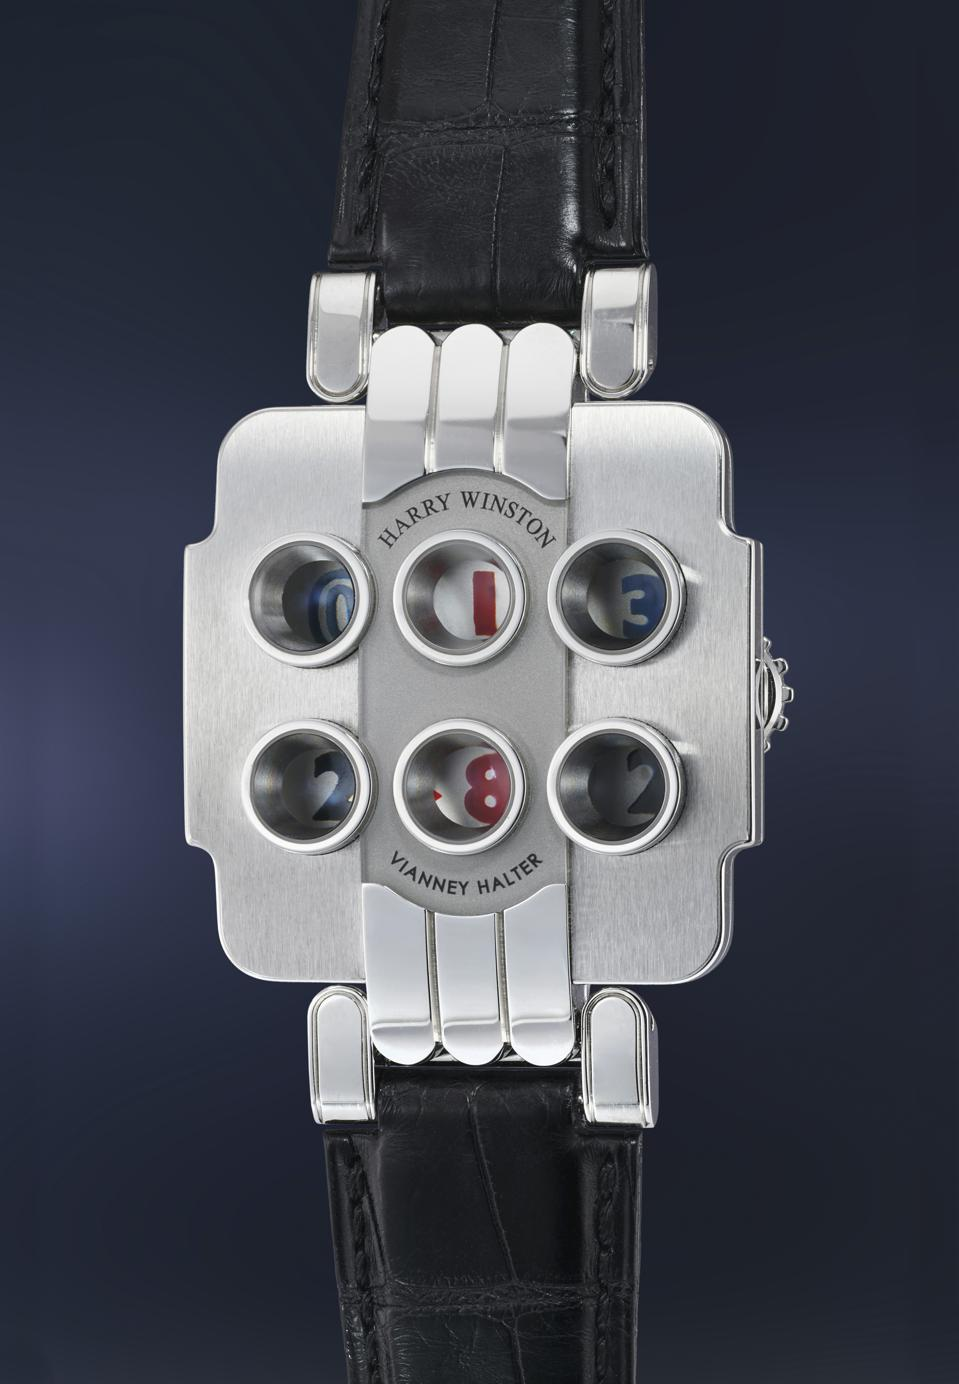 Opus 3 watch by Harry Winston sold for $178,000